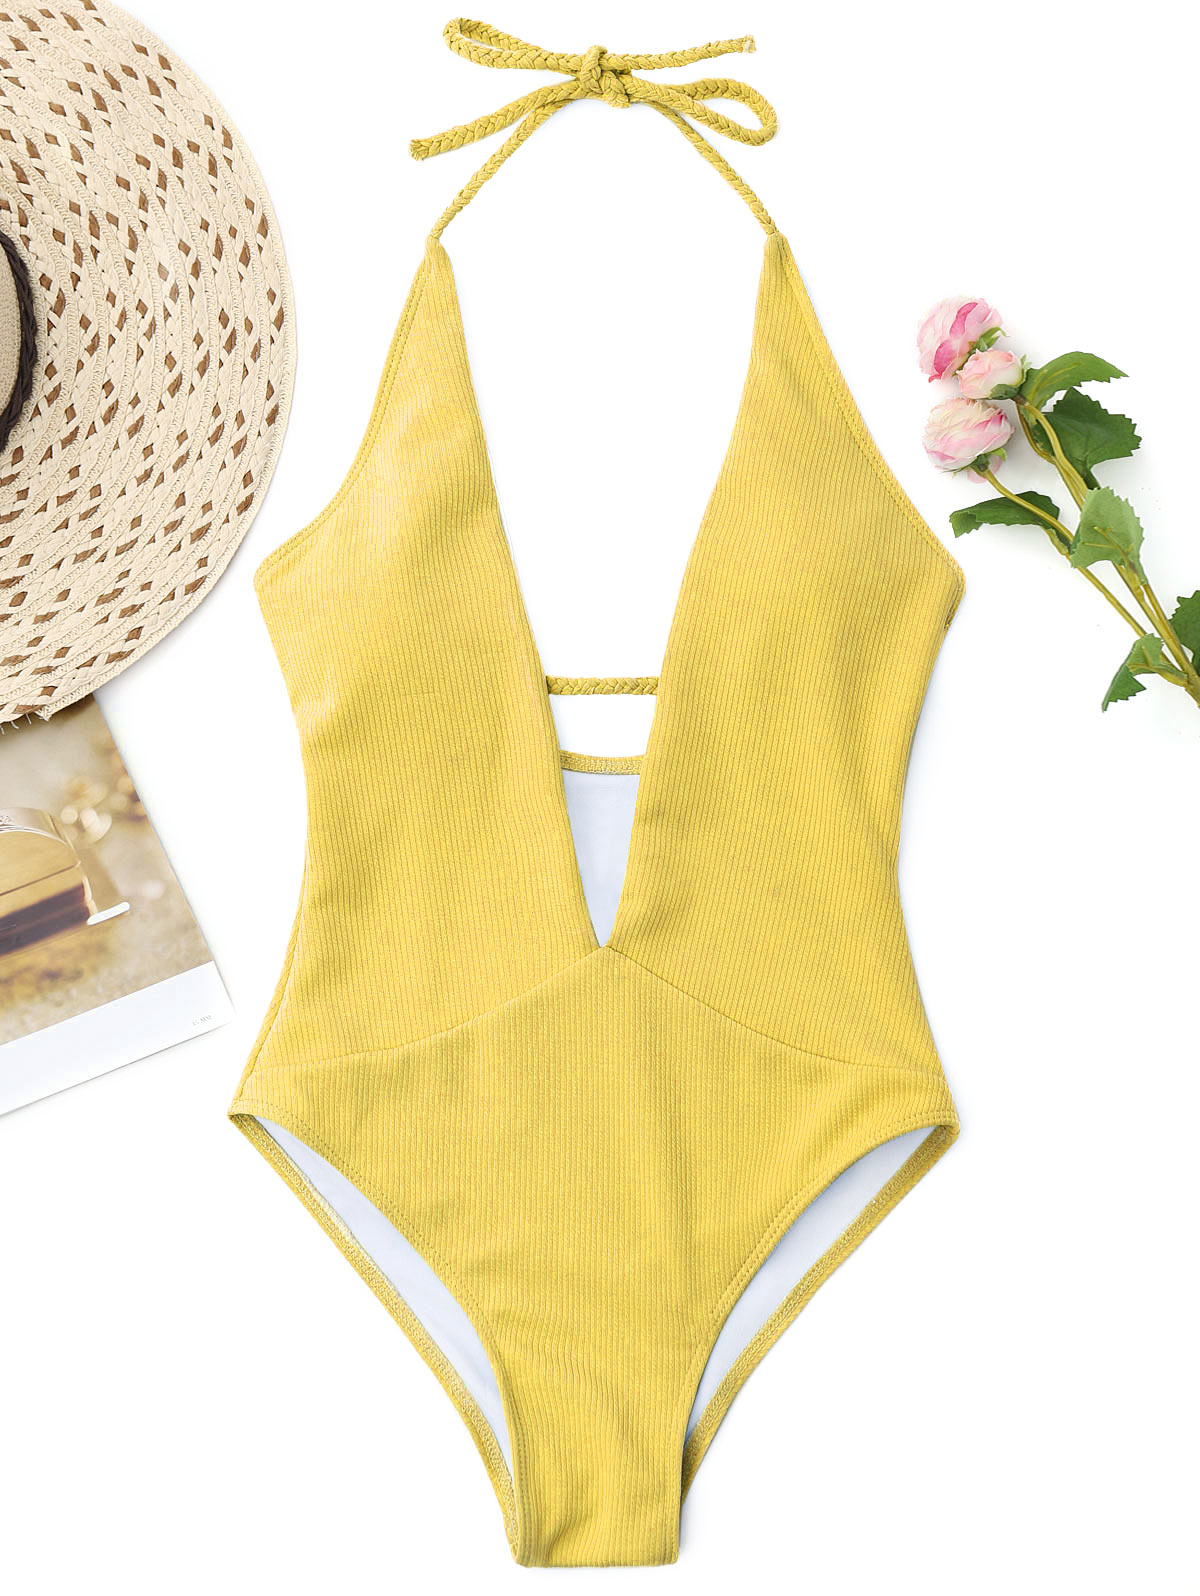 ZAFUL 2018 New Women One Piece Plunge Neckline Ribbed Plaited Swimwear Women Swimsuit Padded Halter Low Cut Solid Bathing Suit trendy halter solid color one piece swimwear for women